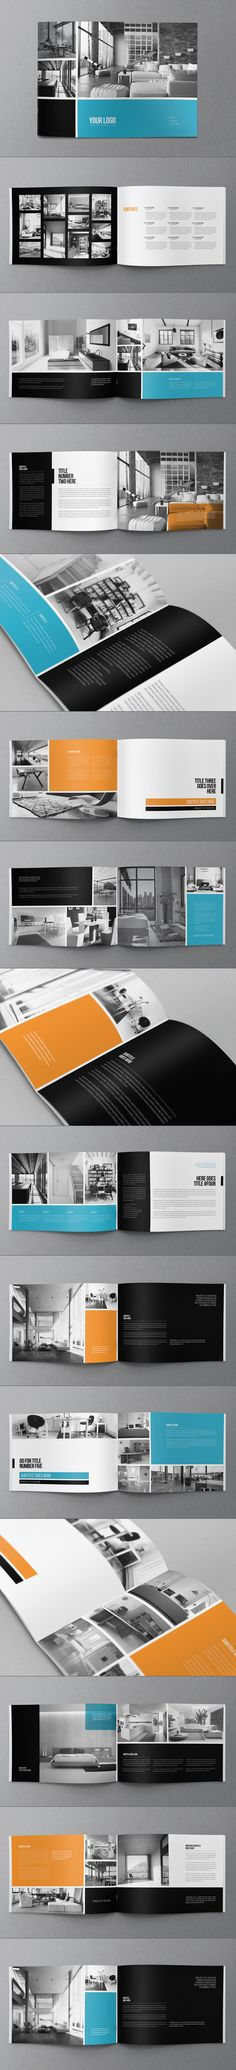 Minimal Modern Brochure. Download here: http://graphicriver.net/item/minimal-modern-brochure/8819275?ref=abradesign #brochure #design